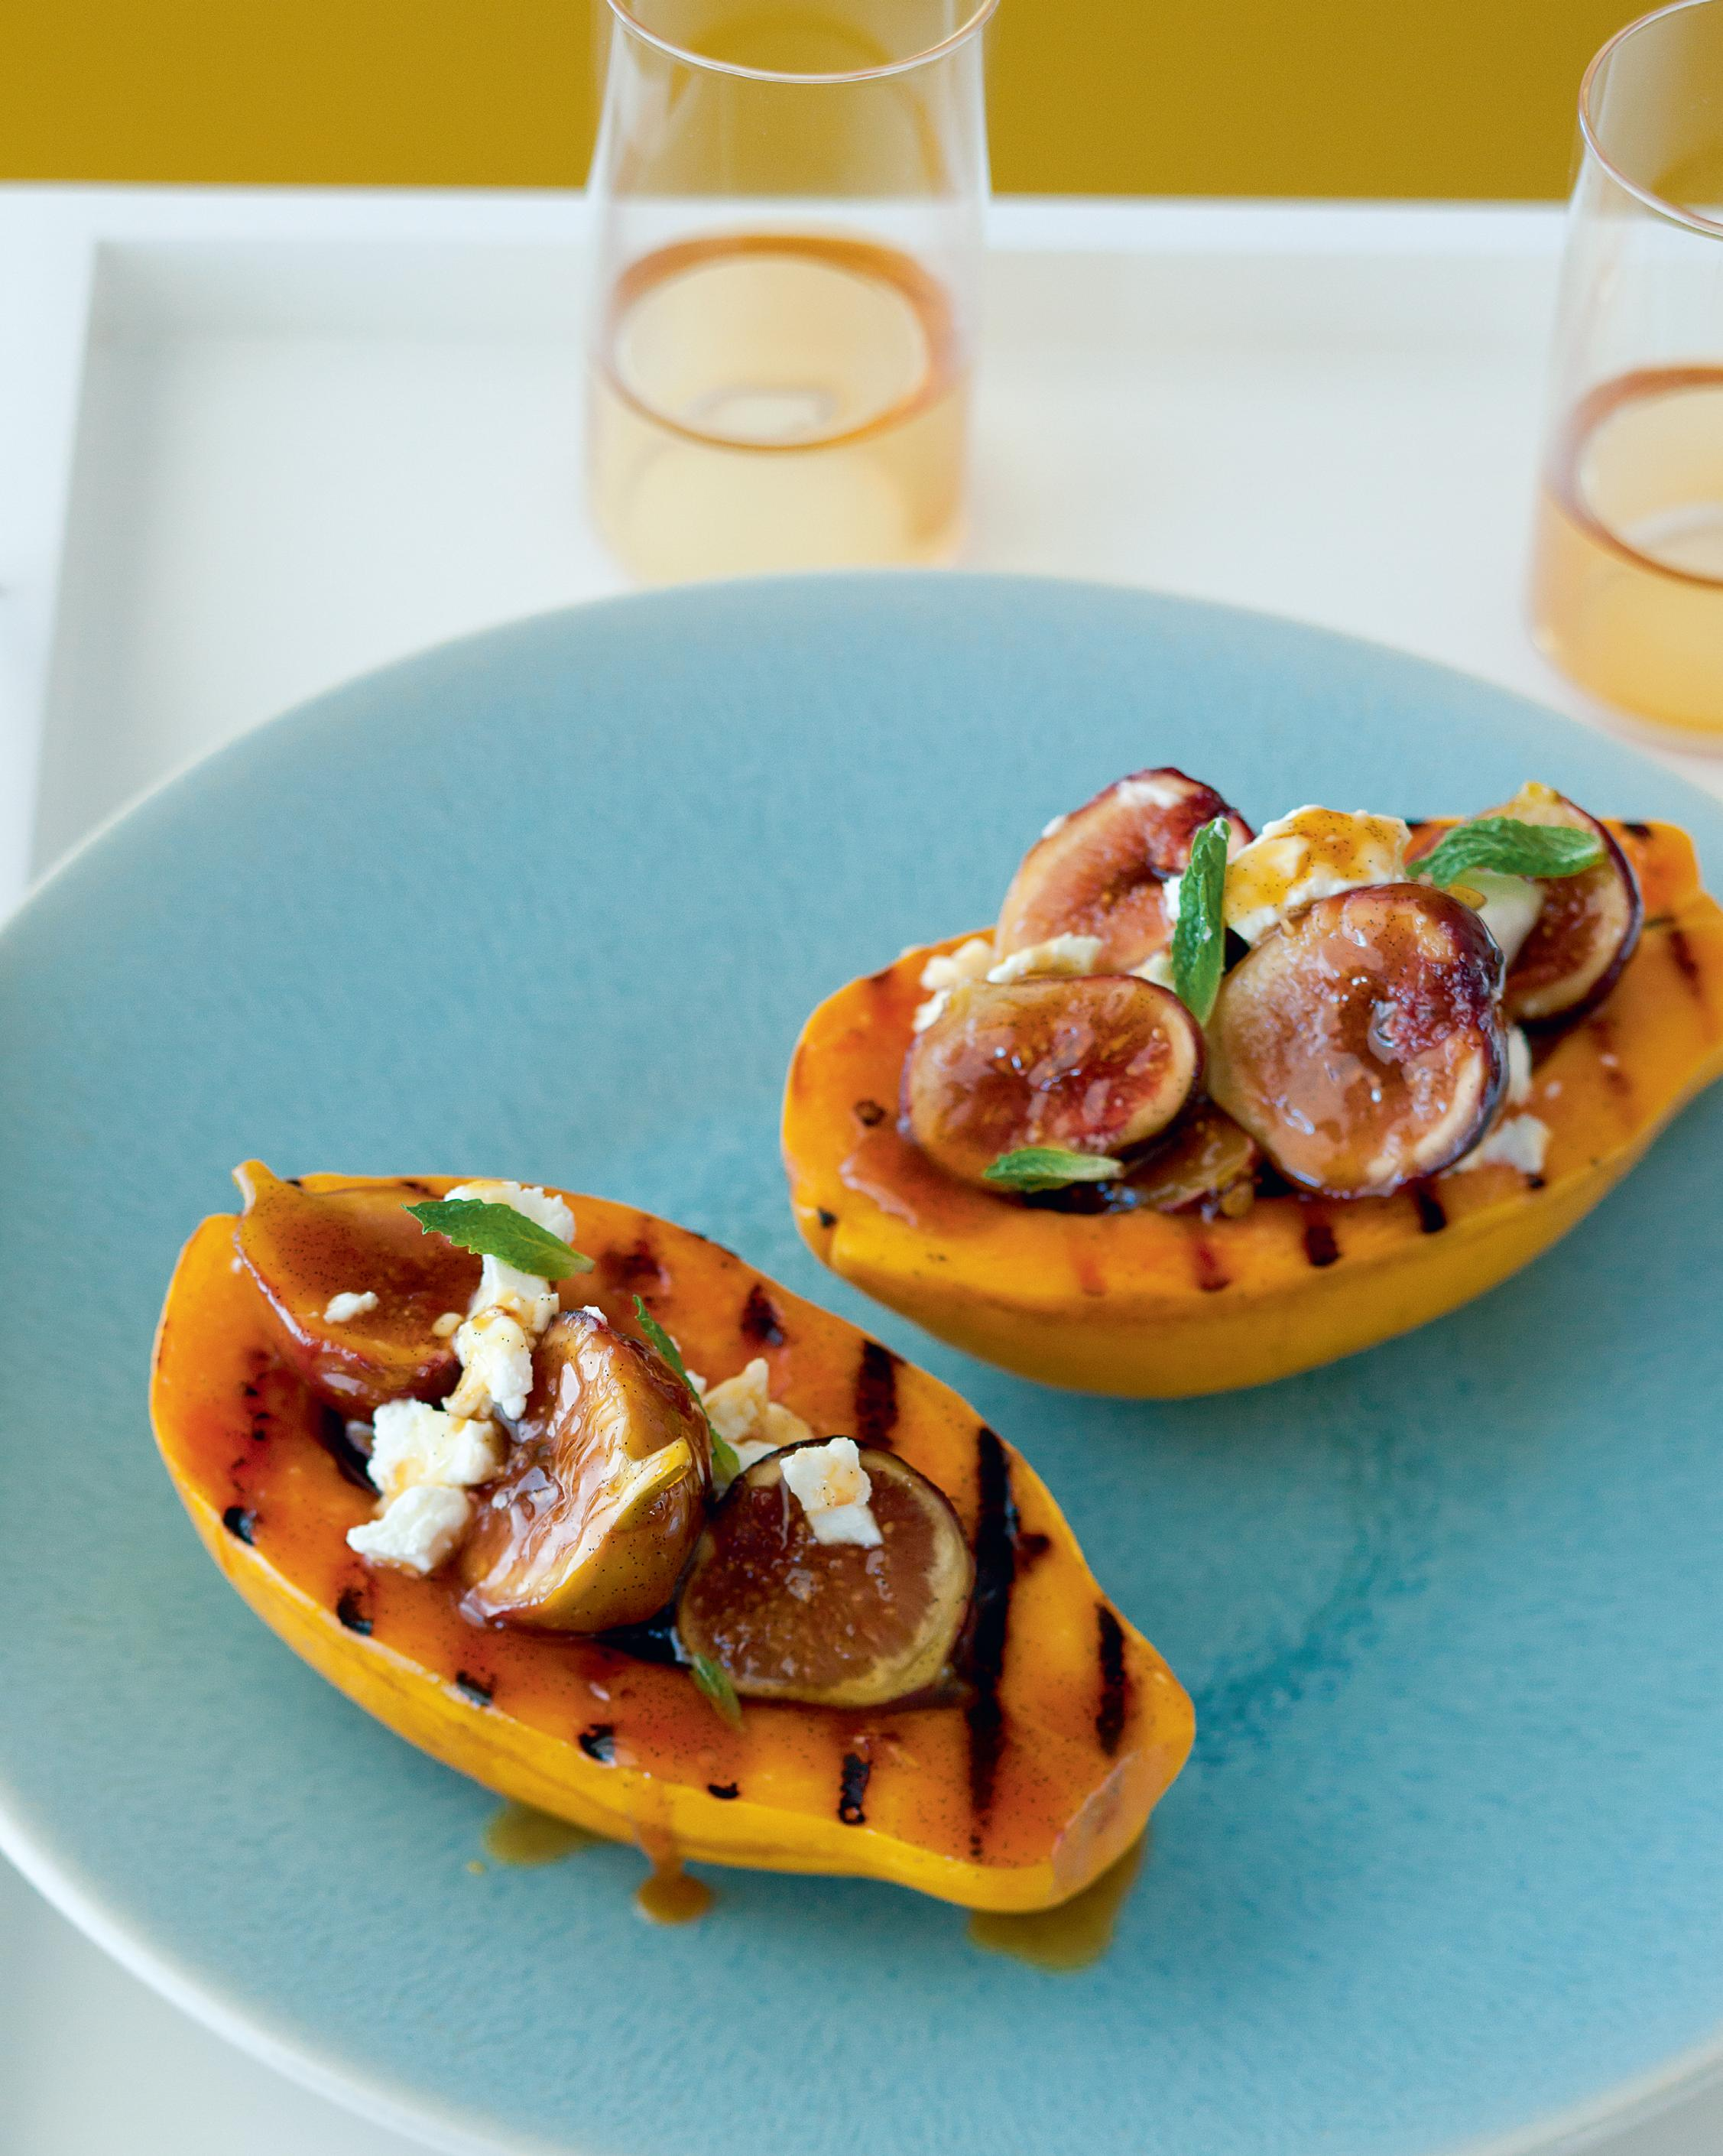 CARAMELIZED VANILLA FIGS with GOAT CHEESE and GRILLED PAPAYAS picture